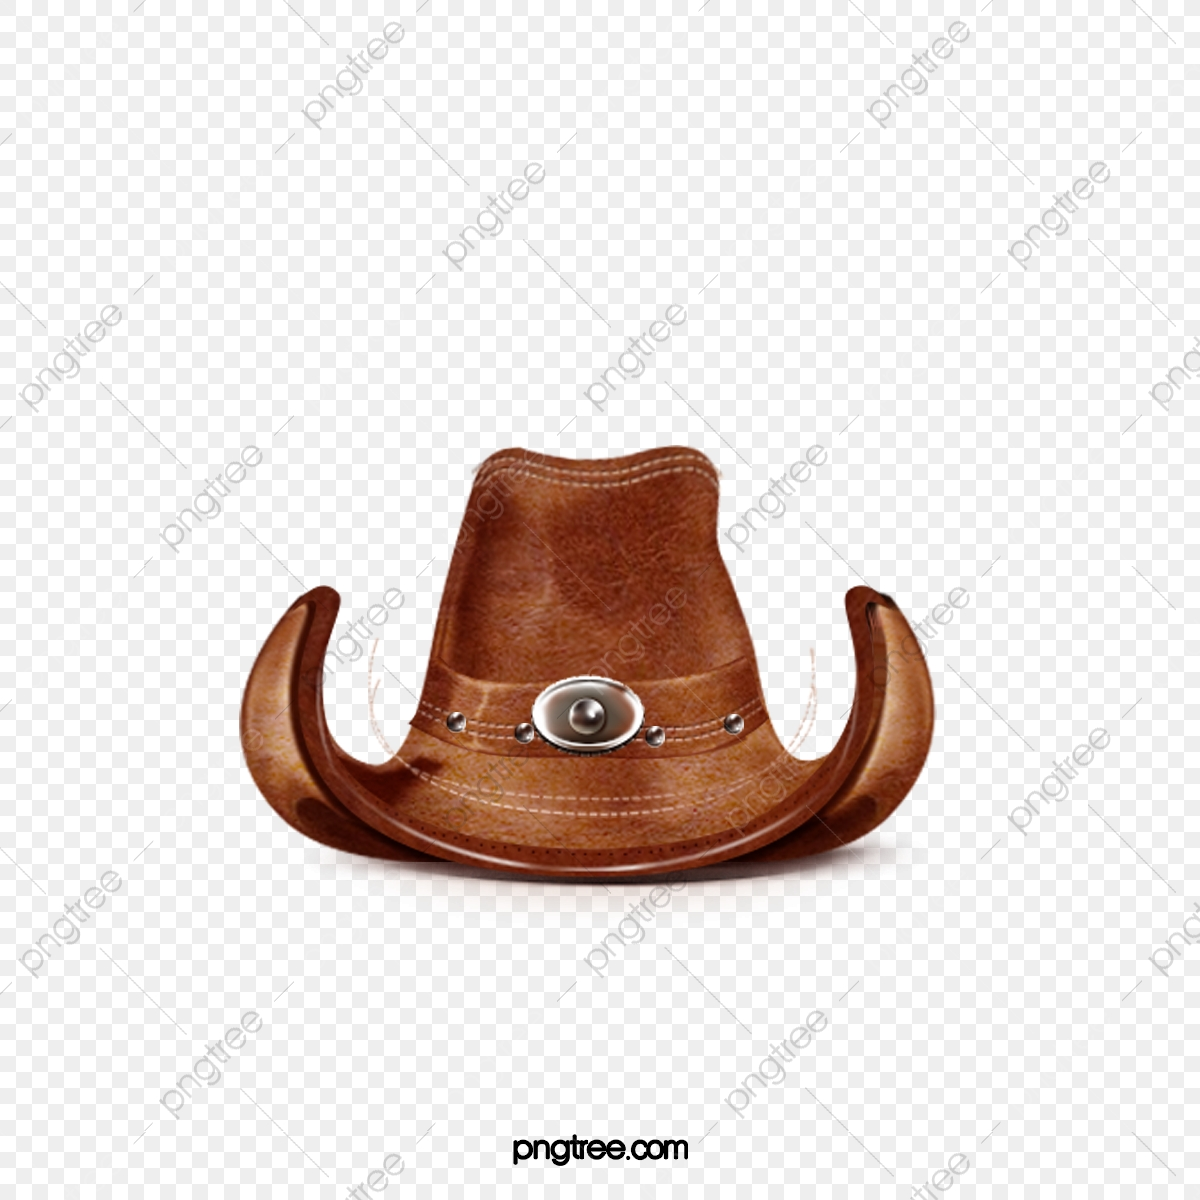 Cowboy Hat Png Vector Psd And Clipart With Transparent Background For Free Download Pngtree Pin amazing png images that you like. https pngtree com freepng cowboy hat 1334143 html